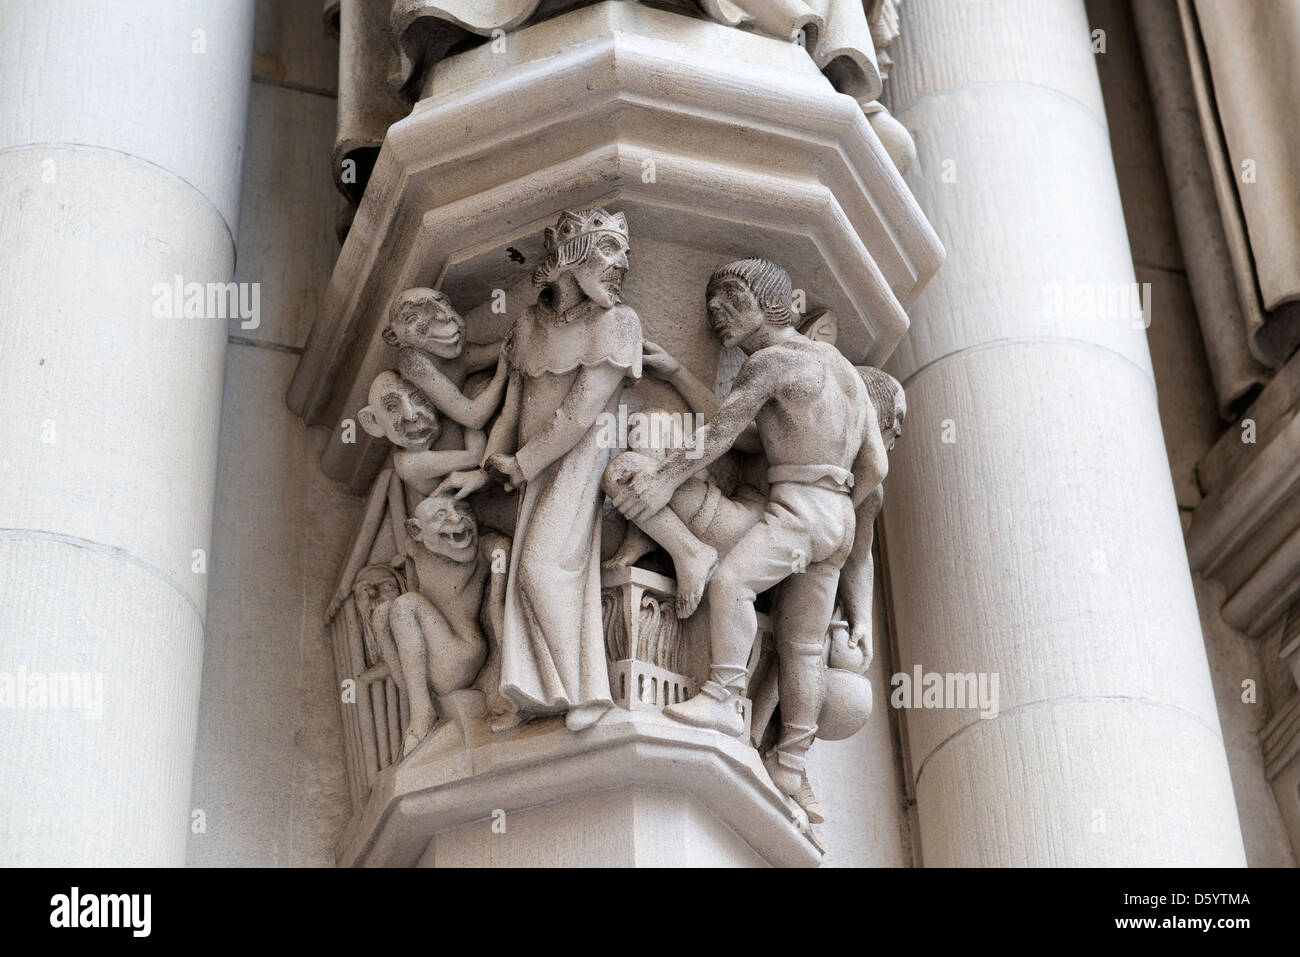 Carvings on the western facade of the Cathedral Church of St John the Divine. - Stock Image